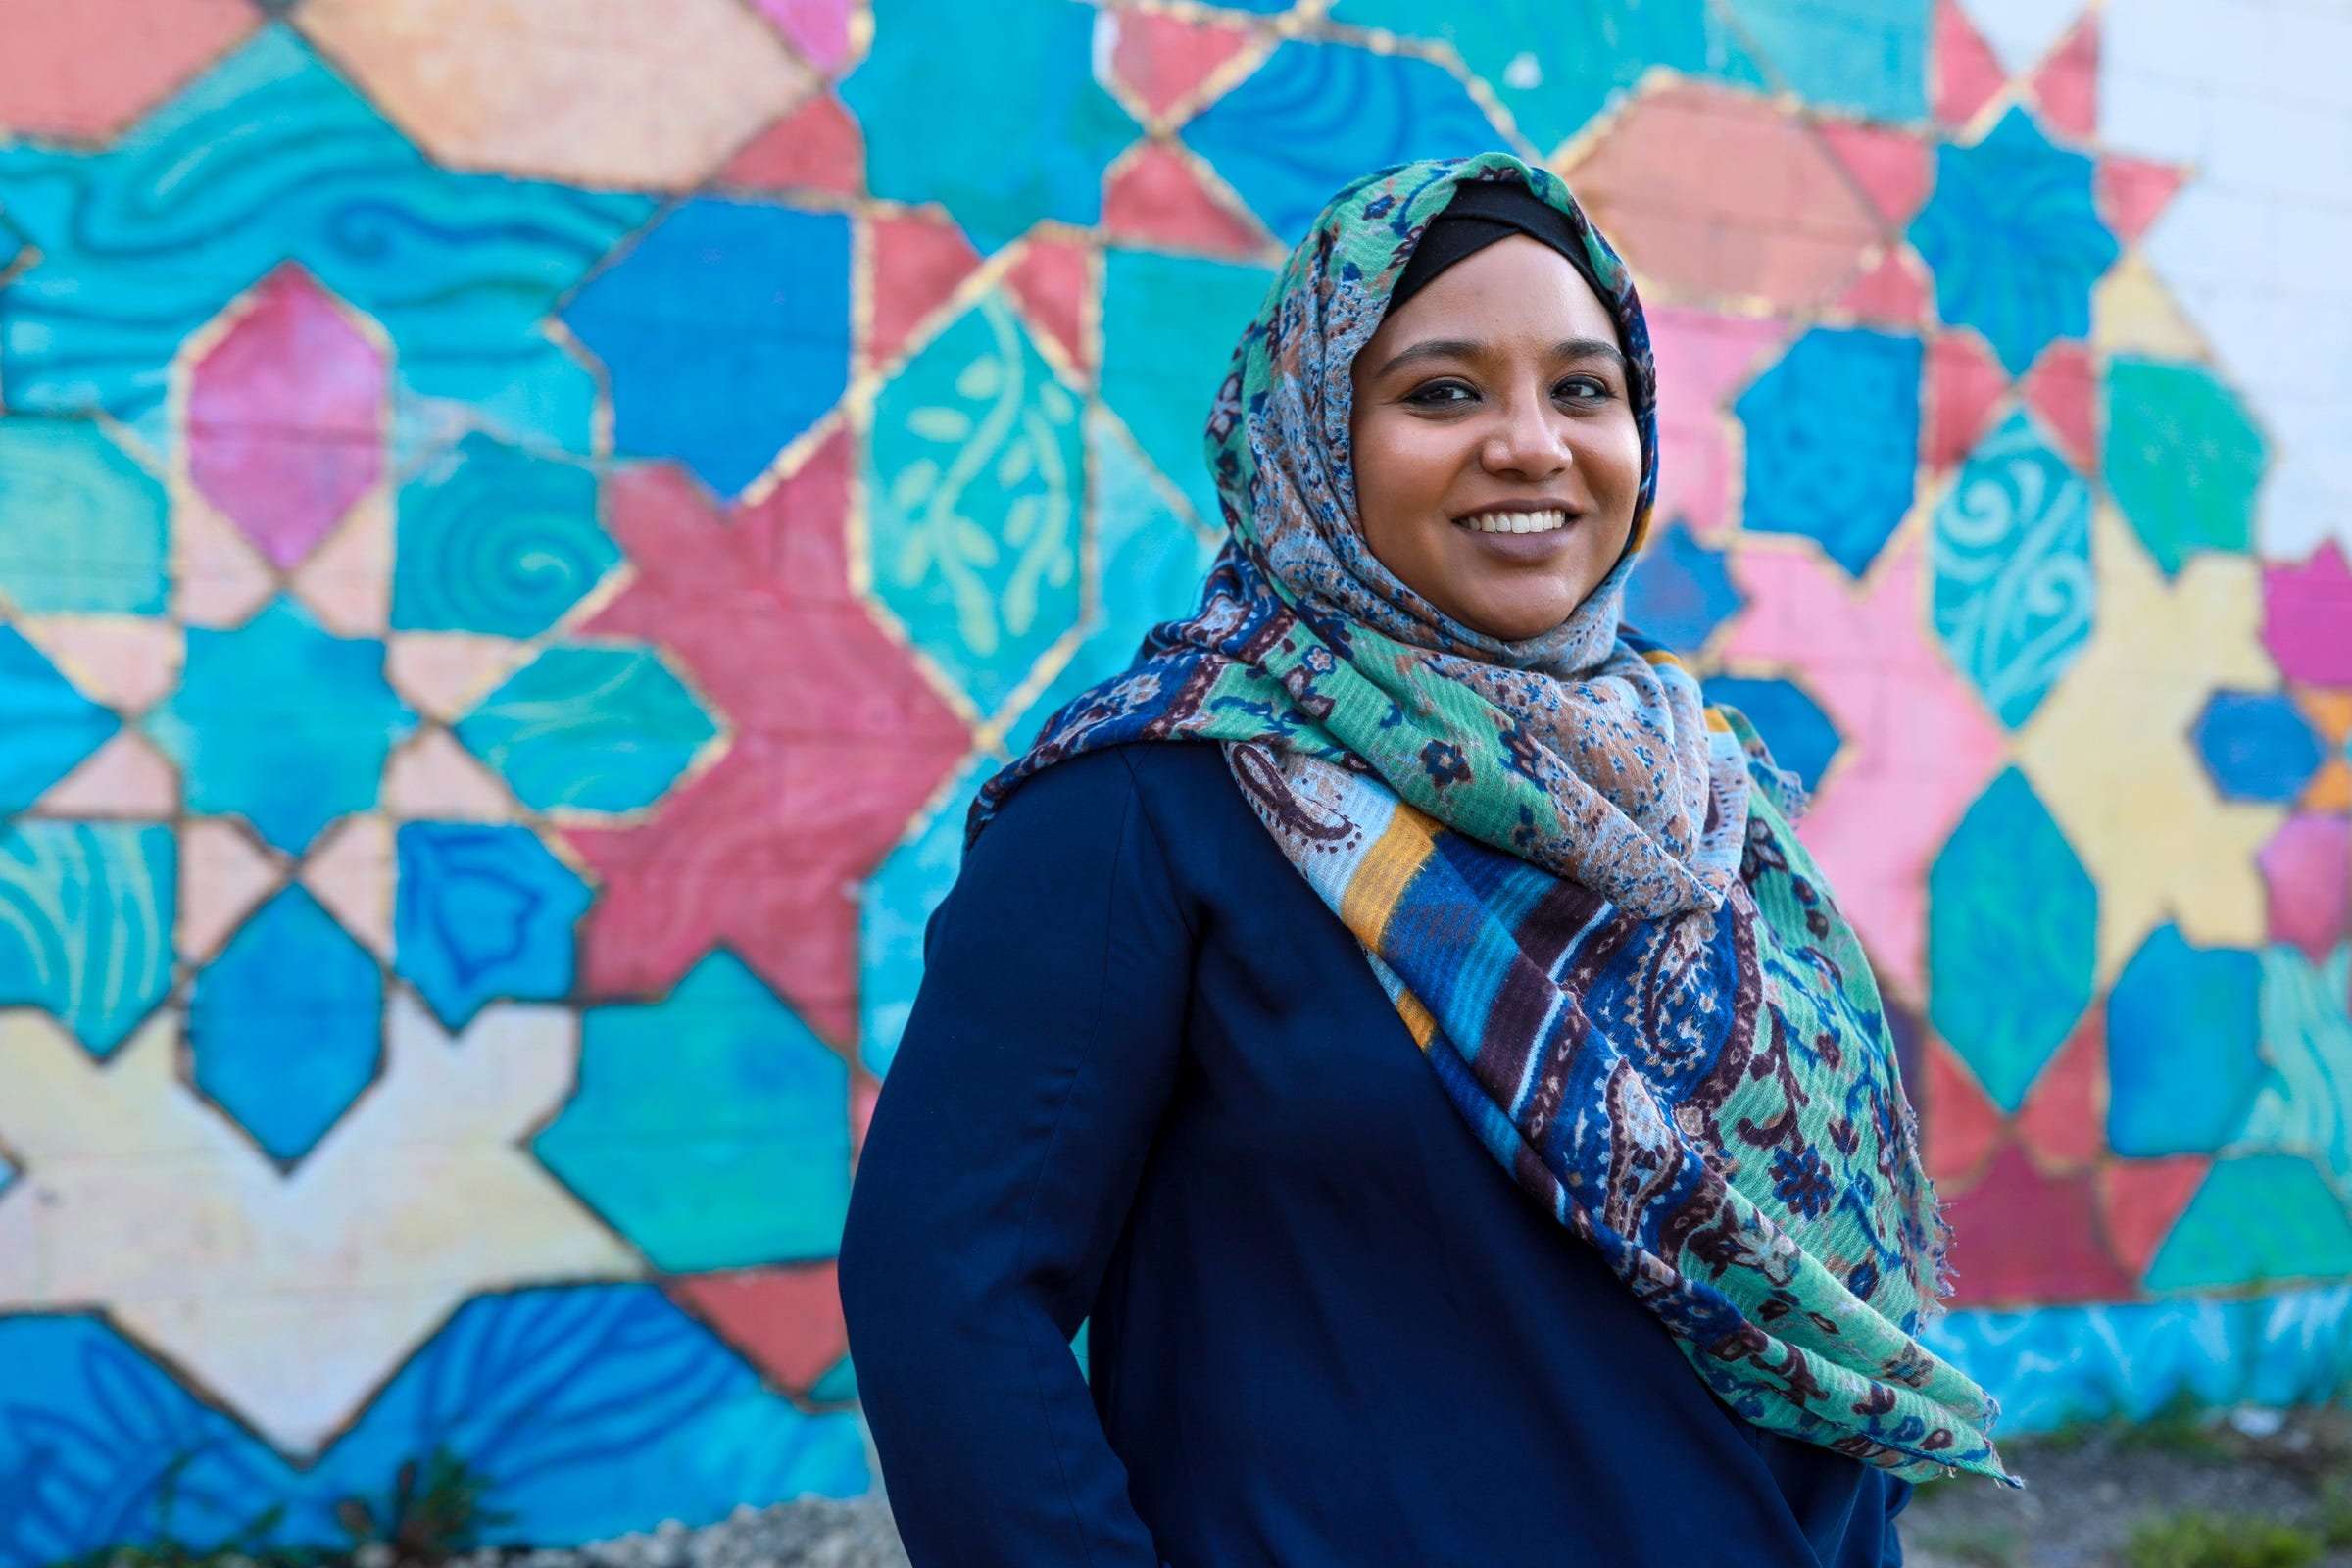 """Namira Islam Anani, 33, of Detroit, is a graphic designer and a lawyer who works as the associate director of ProInspire, an organization that activates leaders at all levels to insure equity for the individual, the organization and systemically. Anani's parents are from Bangladesh, and she grew up in Novi. On 9/11, Anani says she remembers the television being on in her 10th-grade class and it being real quiet, """"the internal reflection was a lot louder than what was happening around me,"""" said Anani. Anani didn't start wearing a hijab until she was 19 and in college, which she says gave her freedom and at the same time a sense of defiance. """"There is a deep discipline and spirituality to being Muslim and we are the most racially and ethnically diverse religious group in United States."""" Anani believes one Muslim can't represent the entire community."""